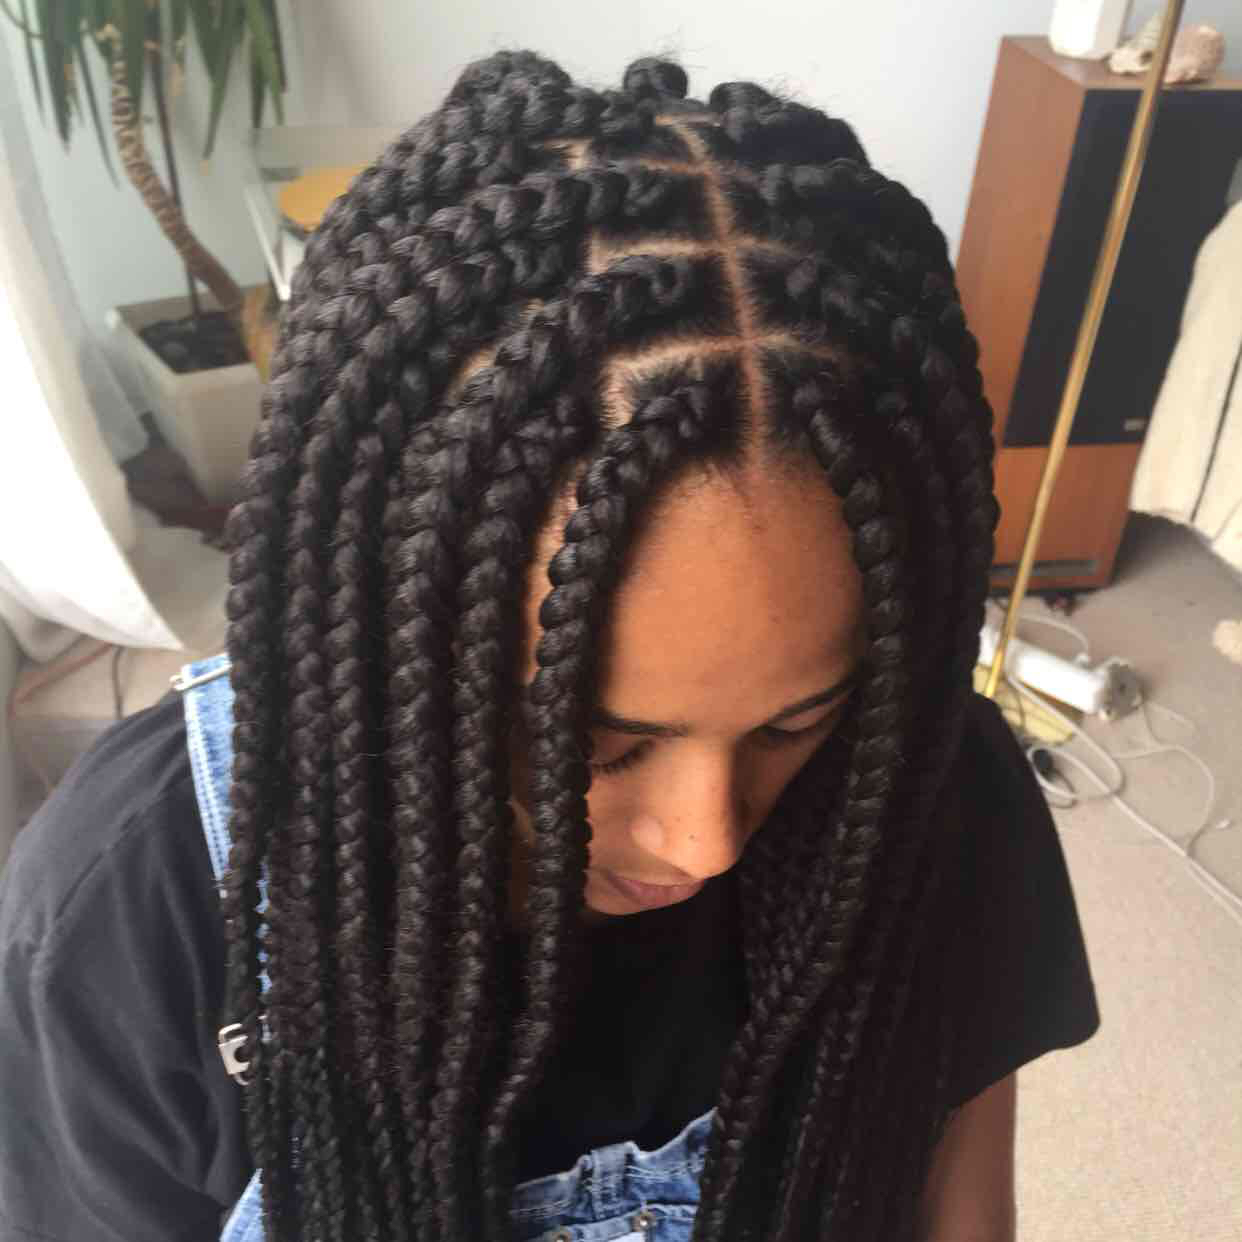 salon de coiffure afro tresse tresses box braids crochet braids vanilles tissages paris 75 77 78 91 92 93 94 95 IVNNYTUT